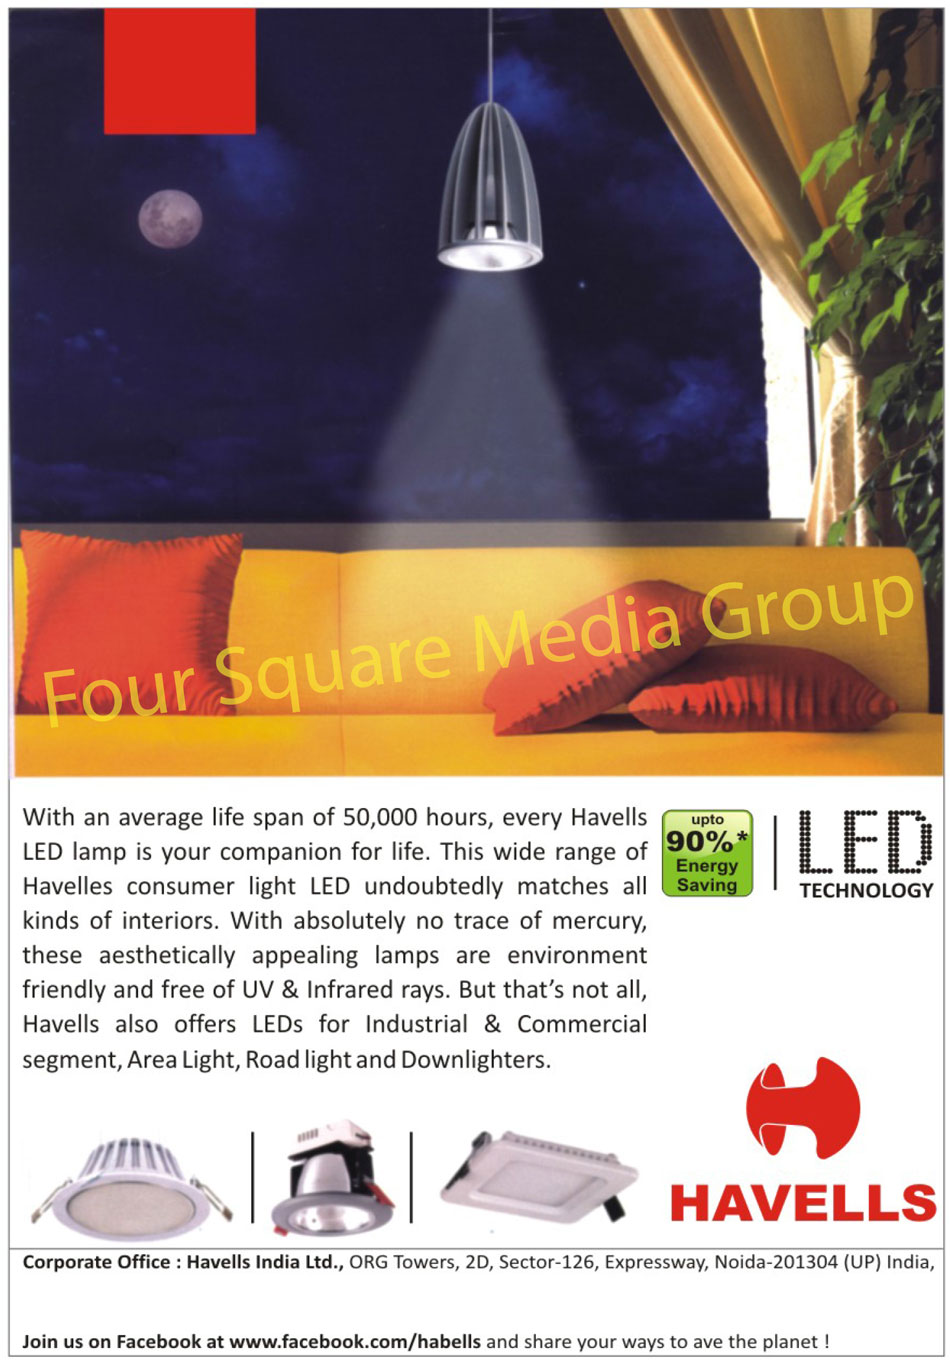 Electrical Items, Electrical Products, CFLs, Distribution Boxes, Flood Lights, Light Equipments, Street Lights, Tube Lights, Lights, Led Lights, Led Tube Lights, Led Bulbs, Down Lights, Led Lamps